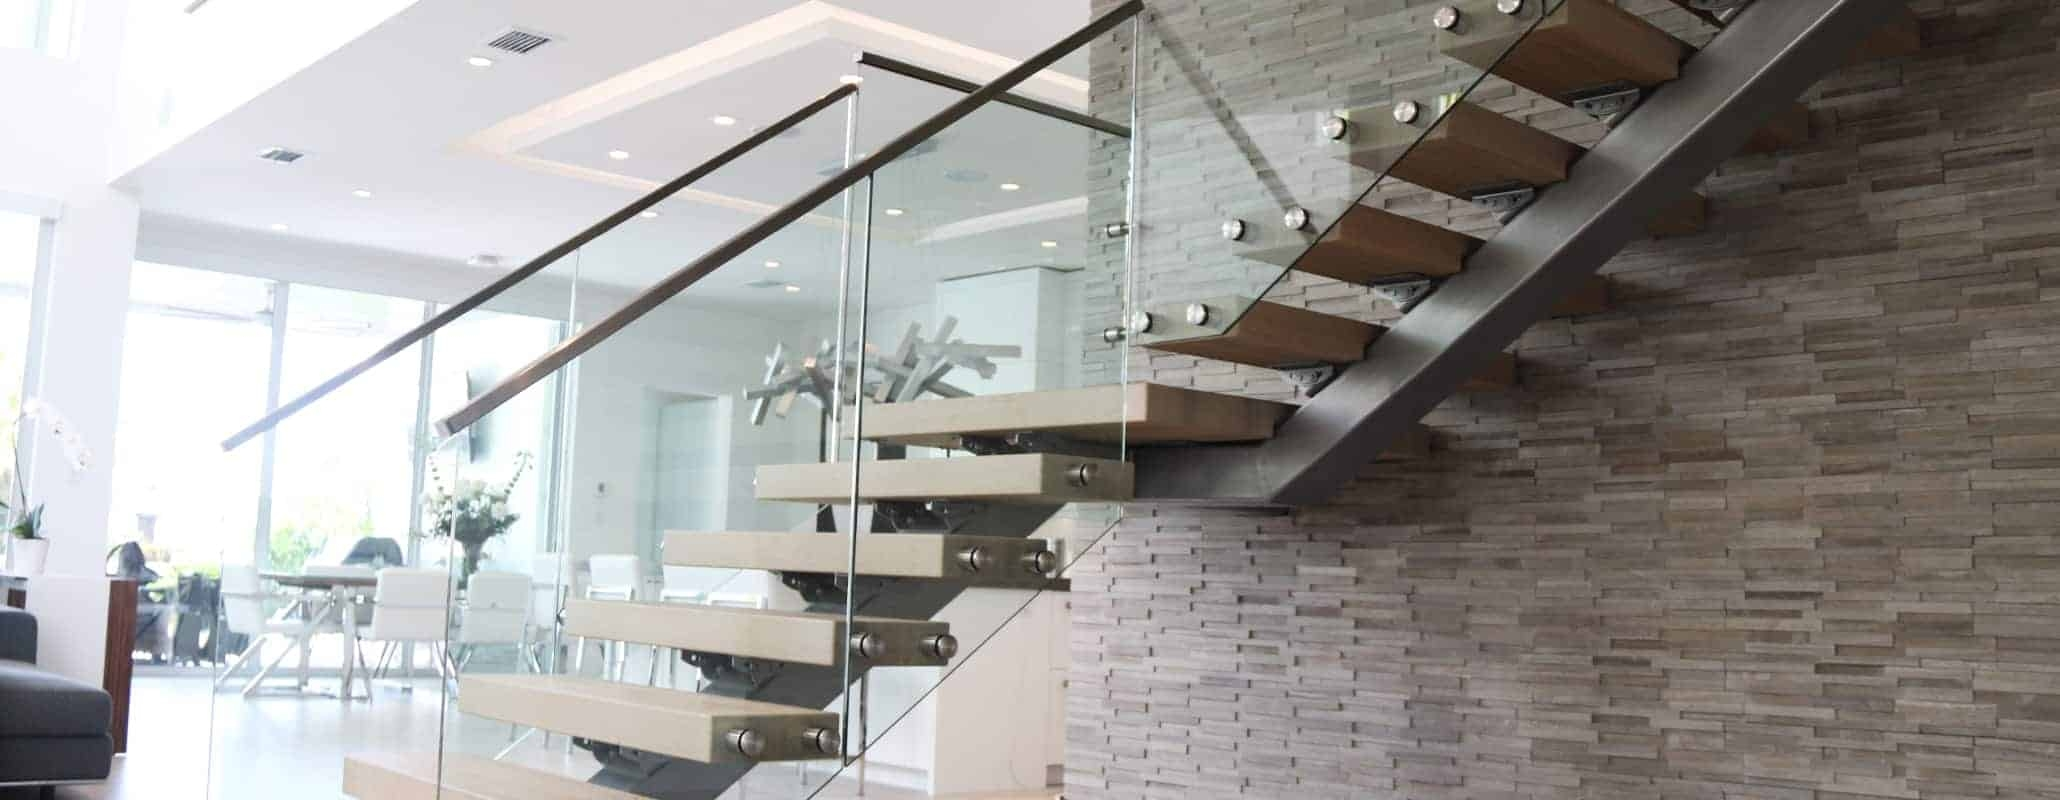 Glass Railings For Interior And Exterior Use By Aldora | Ada Compliant Exterior Handrails | Stainless Steel | Deck Railing | Extension | Vinyl | Hand Rail